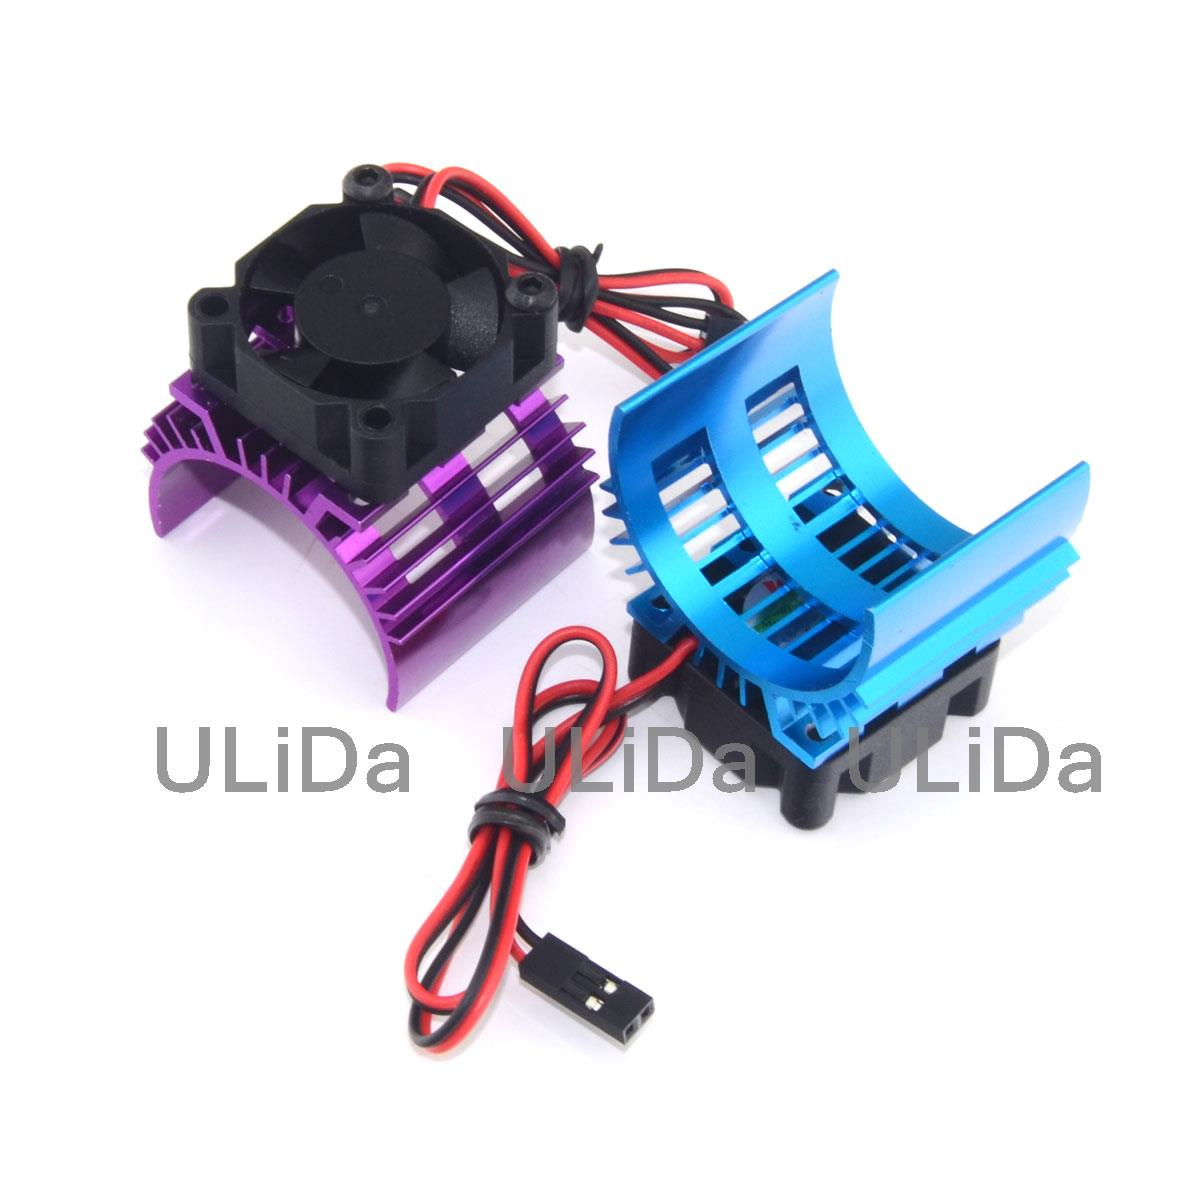 Us 3 68 6 Off Hot On Sale Blue Rc Parts Electric Car Motor Heatsink Cover Cooling Fan For 1 10 Hsp Rc Car 540 550 3650 Size Motor Heat Sin In